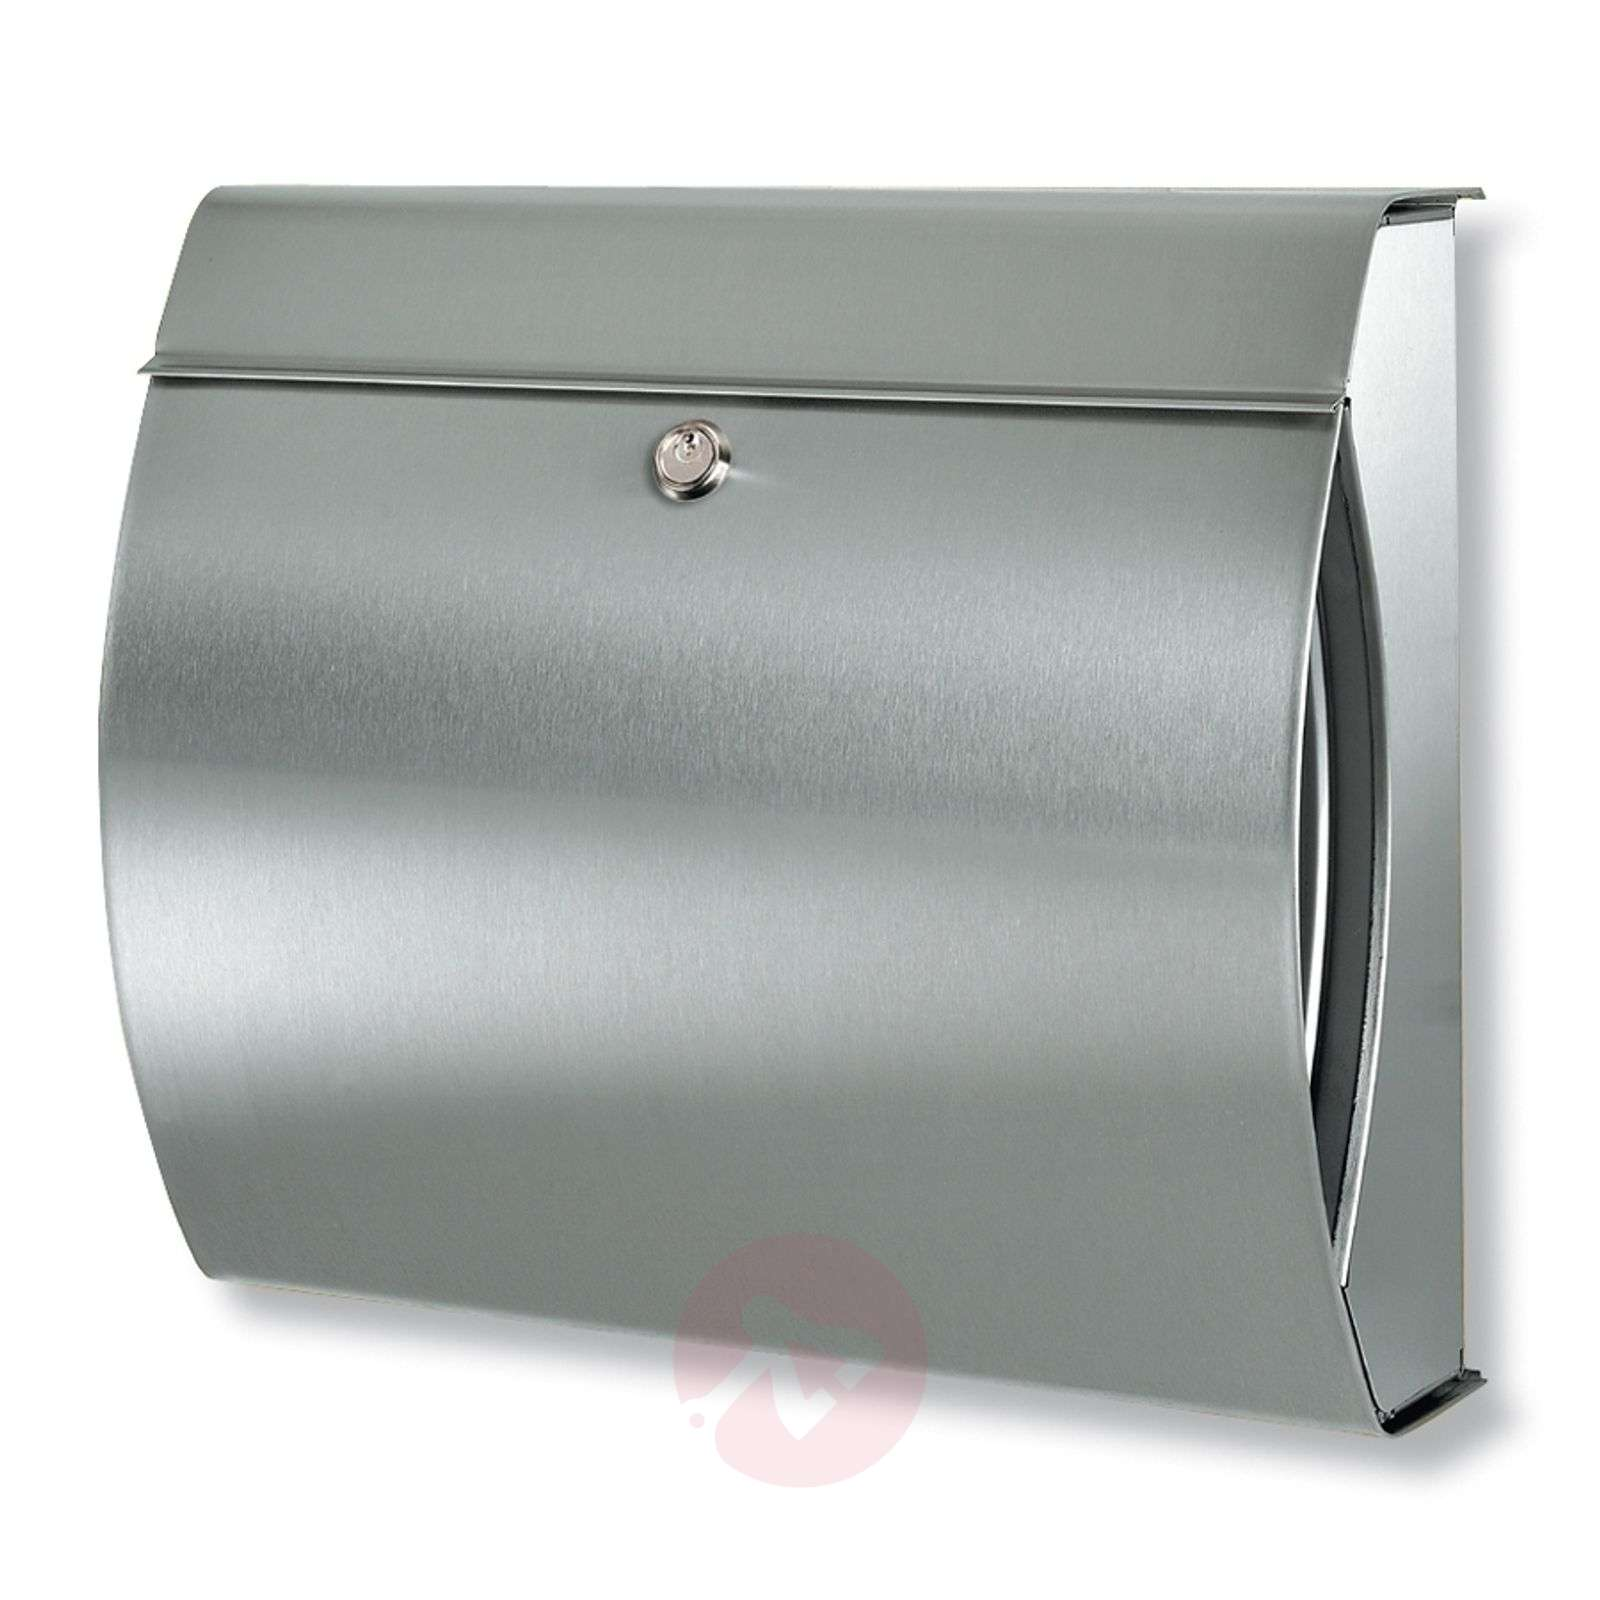 Fashionable stainless steel letter box Verona_1532024_1